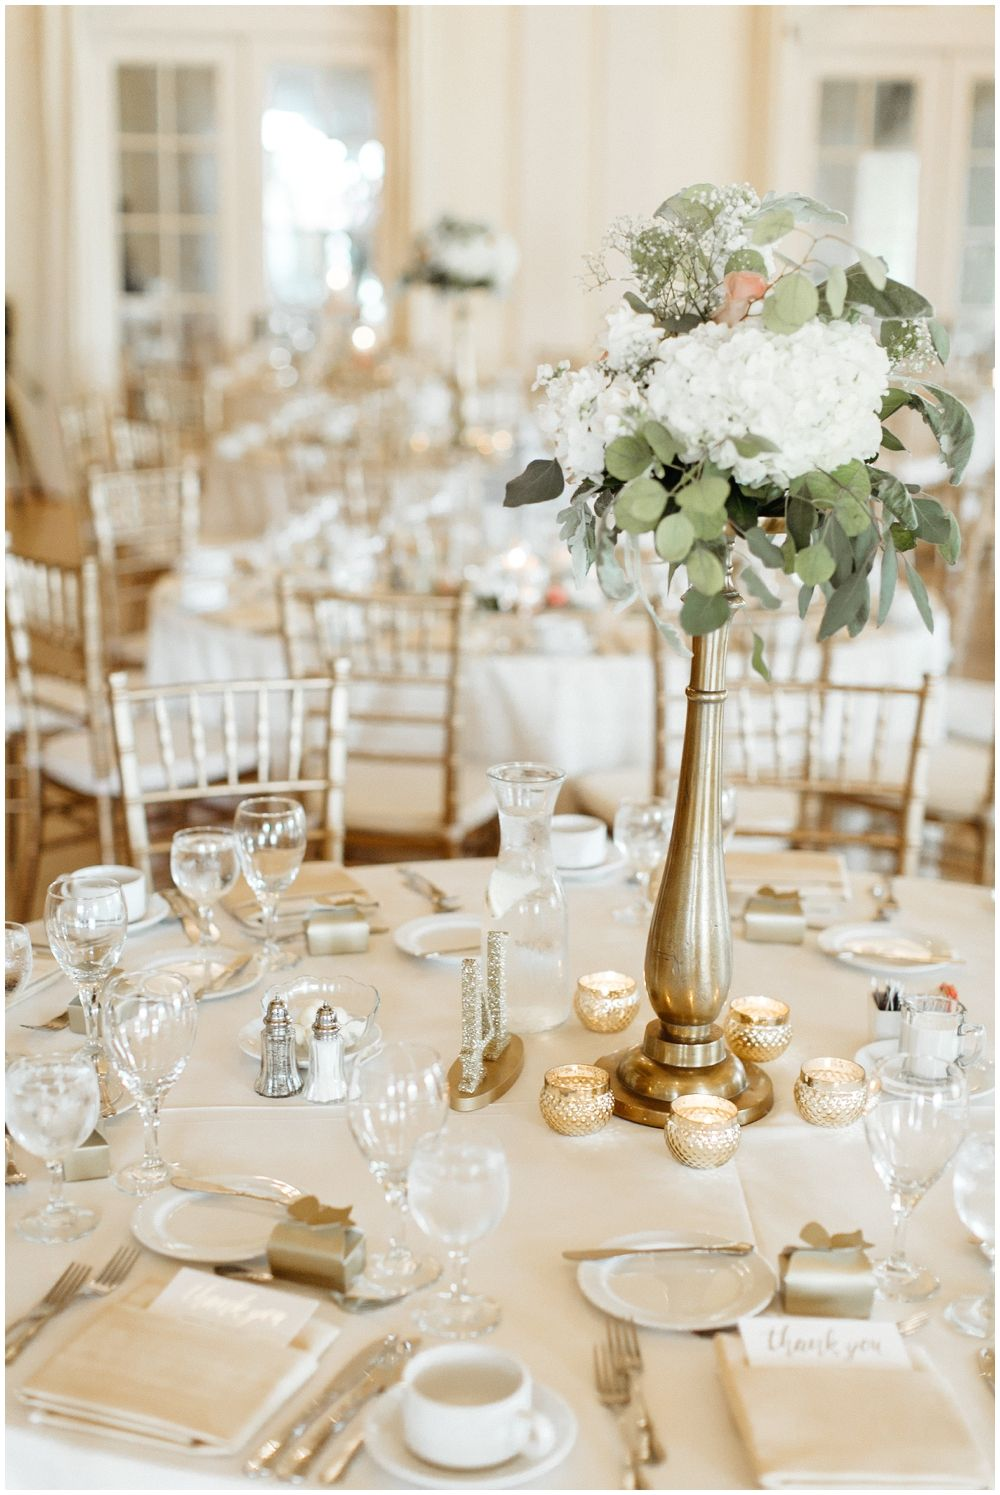 Timeless centerpiece ideas. White and greenery. MN Wedding Planner ...